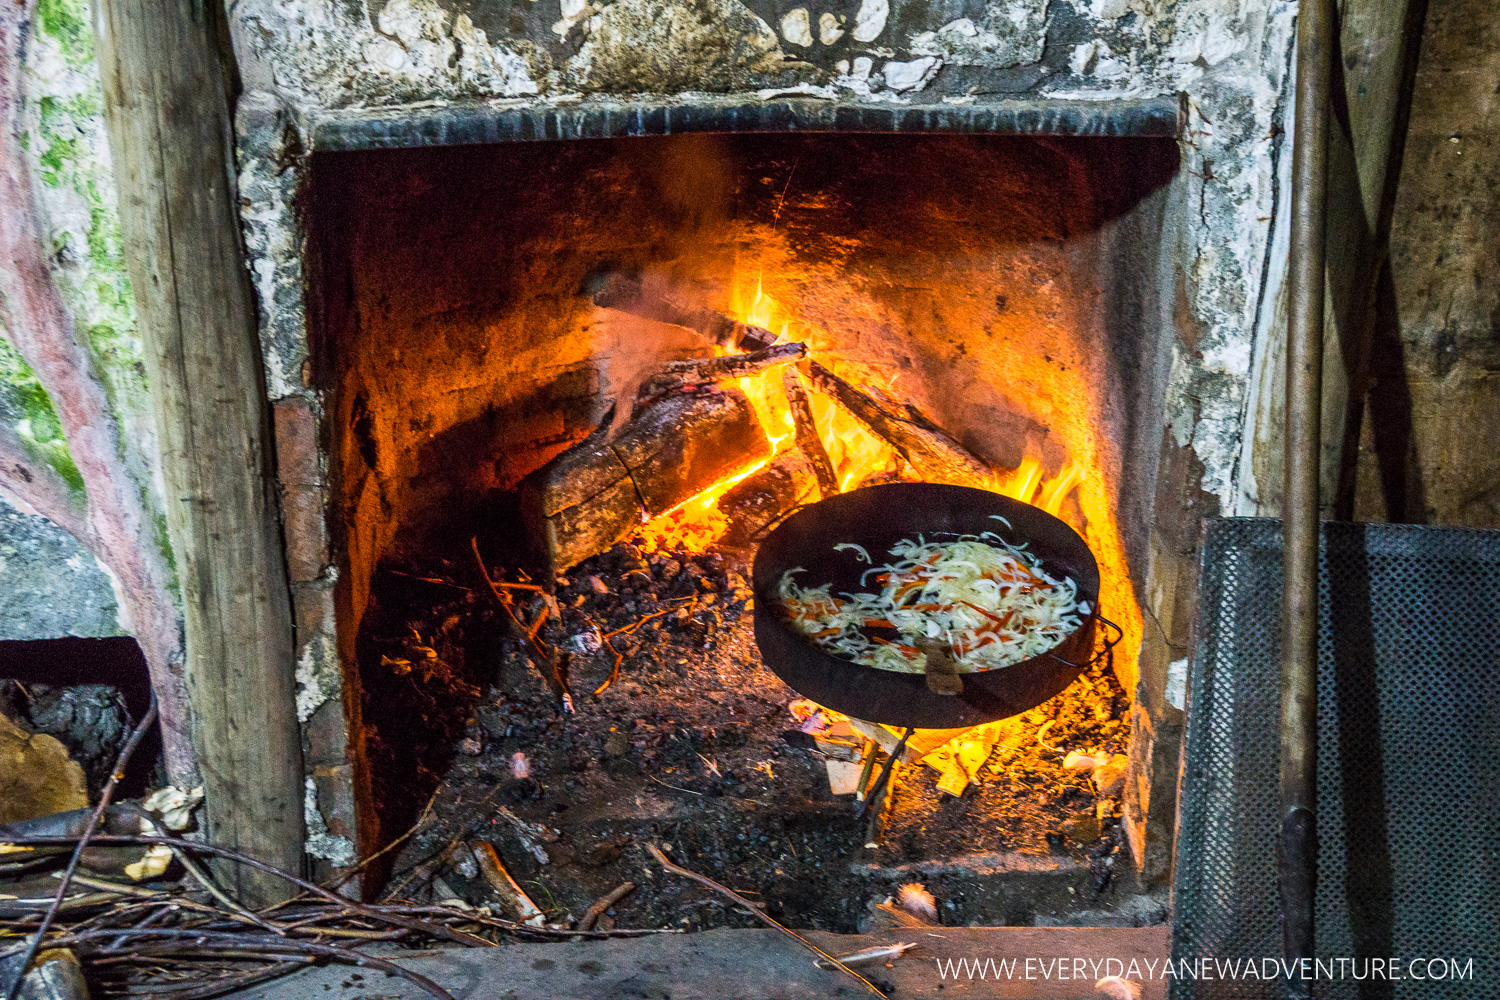 Our dinner, Pollo al Disco, cooking in the fireplace!